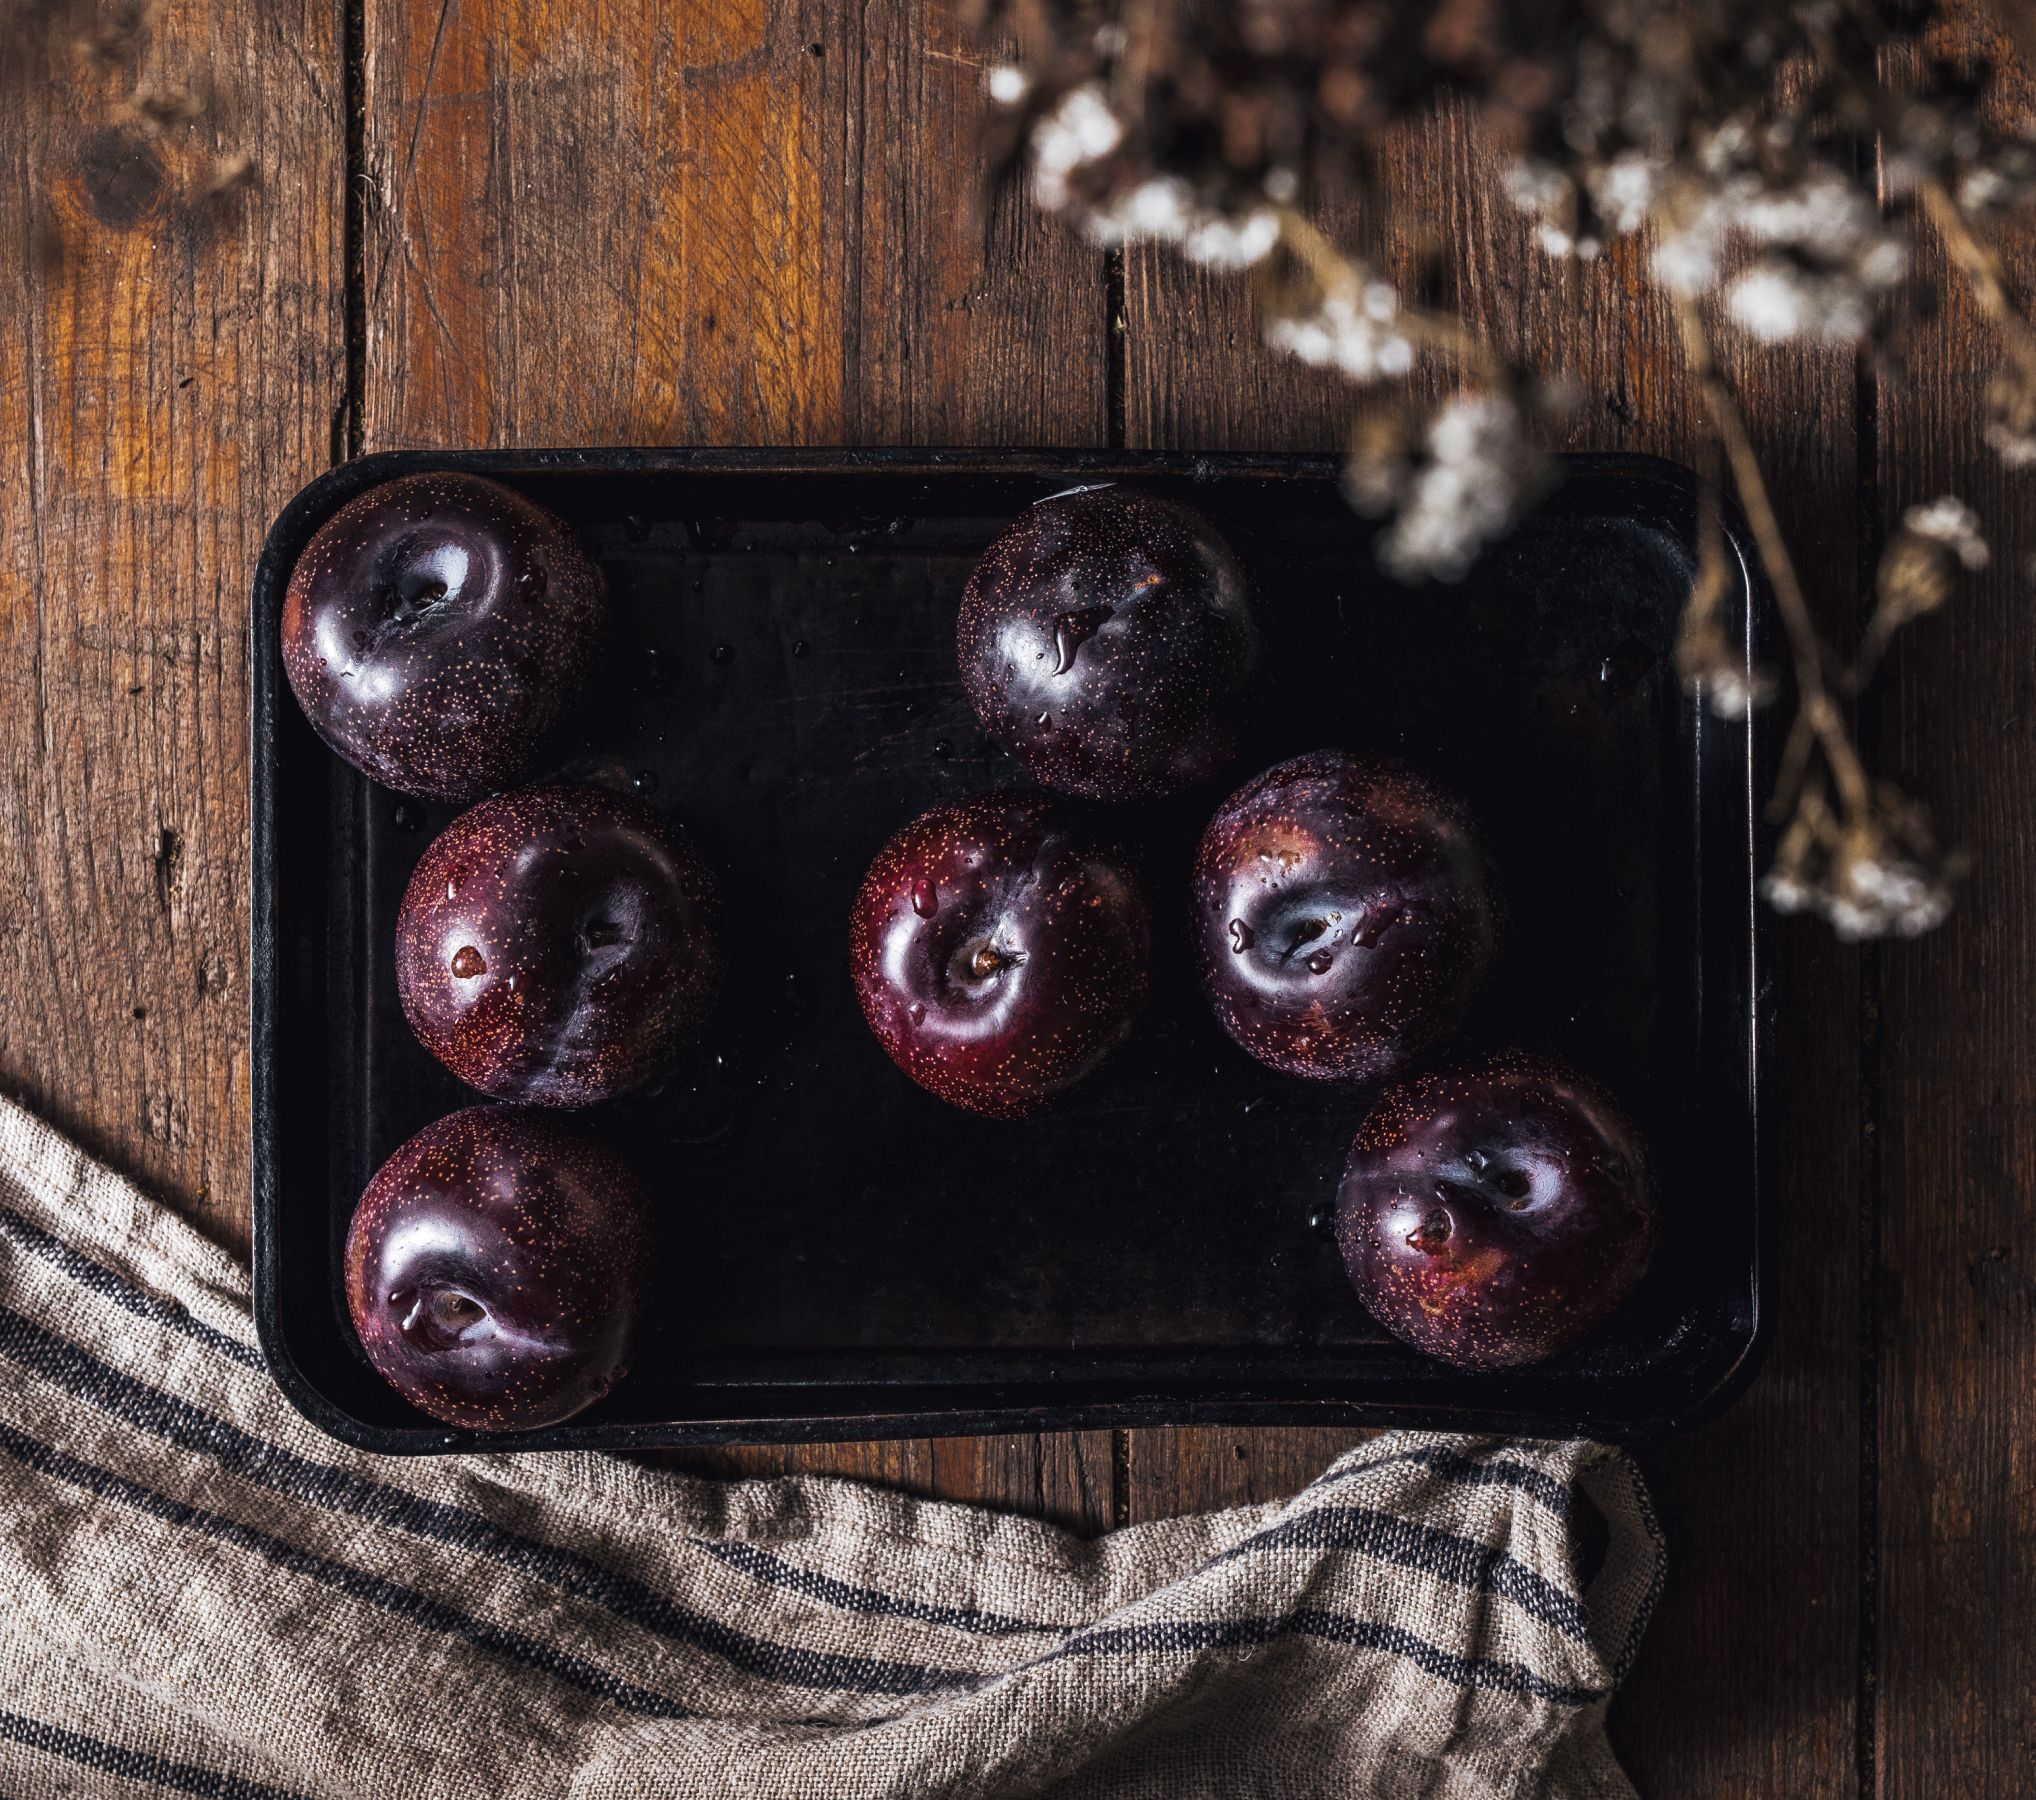 A group of Queen Garnet plums sitting on a wooden table